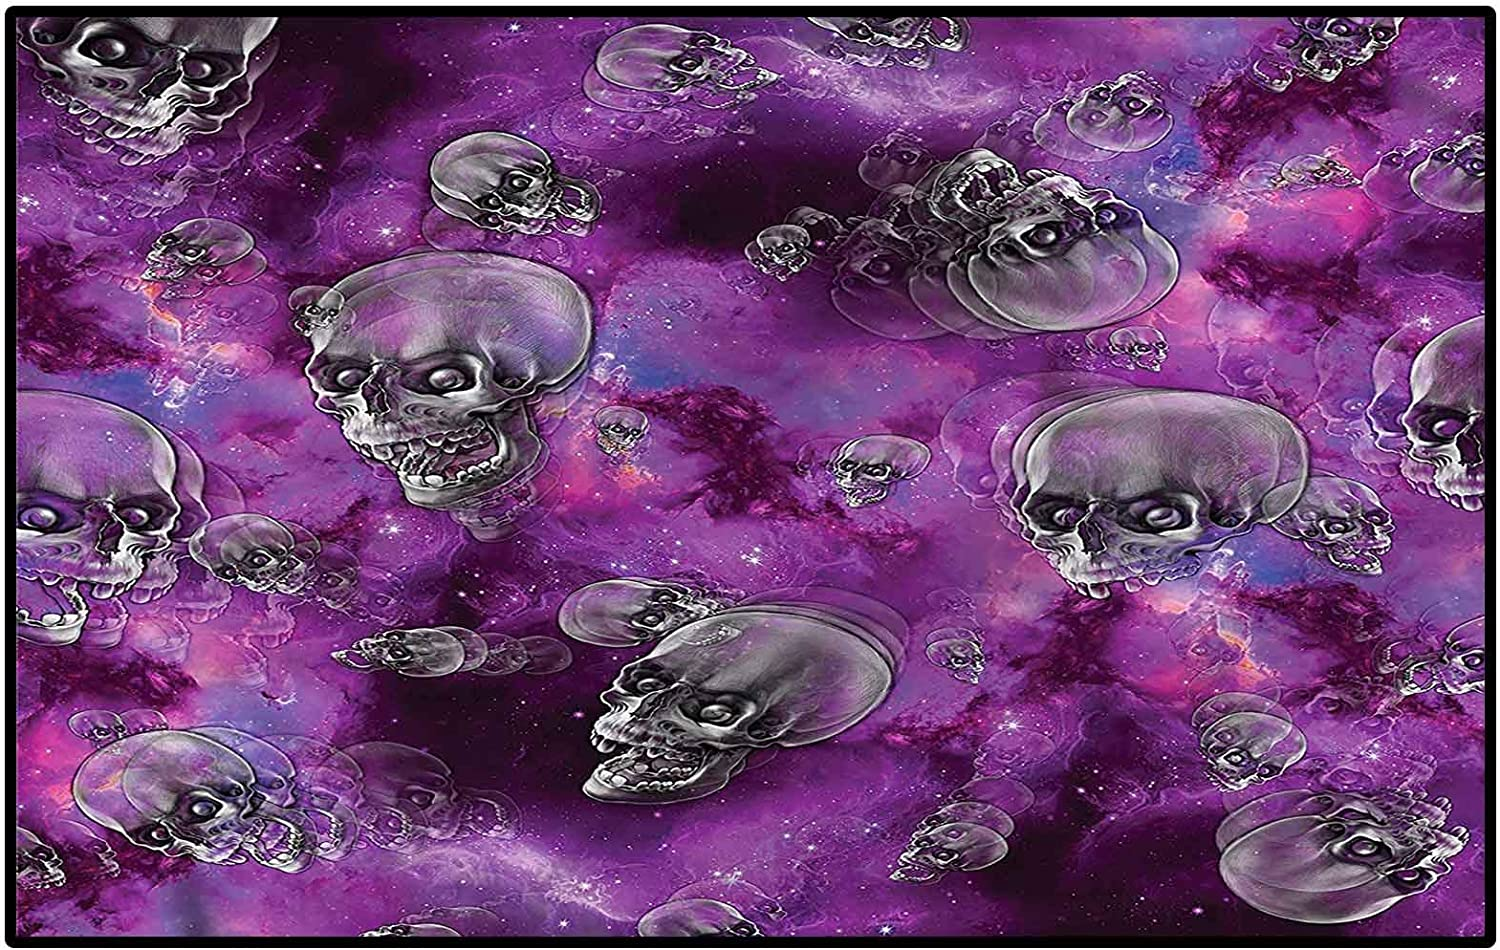 Bargain Skull Classroom Rugs 70% OFF Outlet Elementary Contemporary Area Halloween